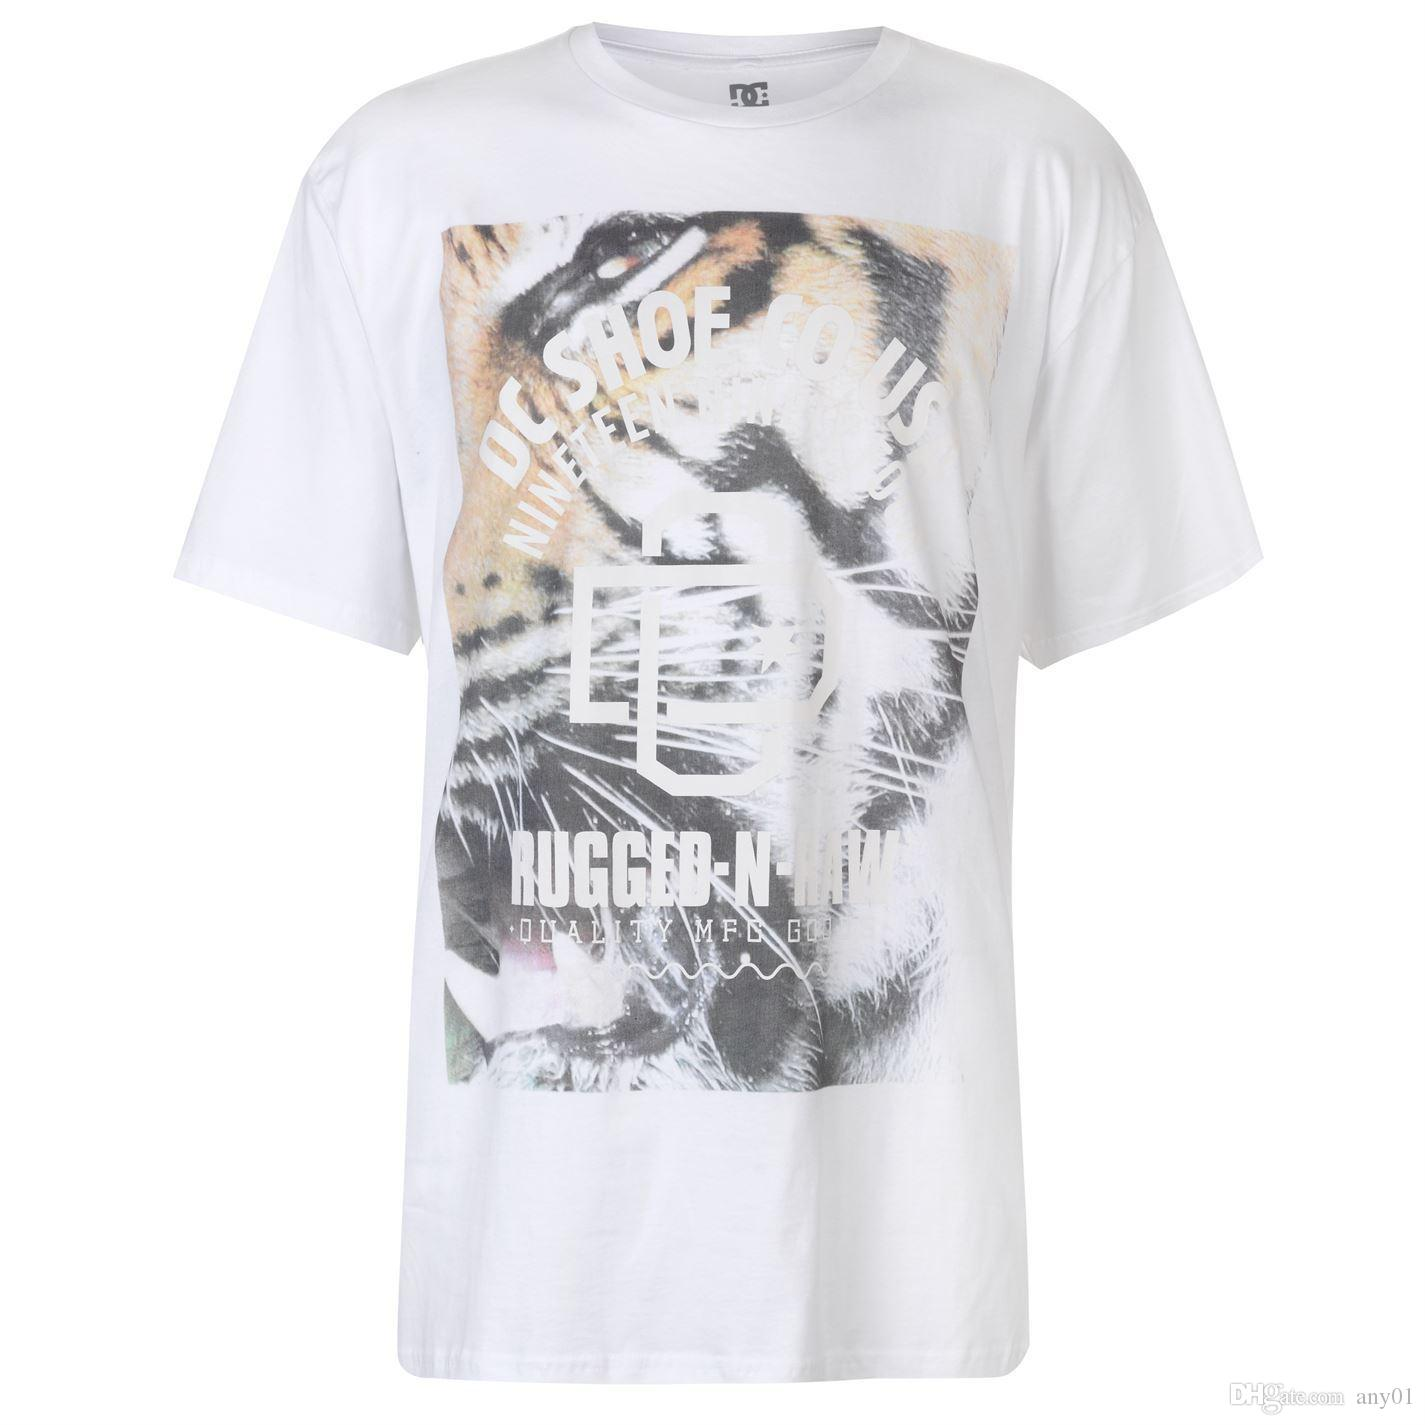 dd6fa244 DC Shoe Co USA Tiger T Shirt Mens White Tee Shirt Tshirt Top Cool Tee  Designs Tees Shirts Cheap From Any01, $13.19| DHgate.Com